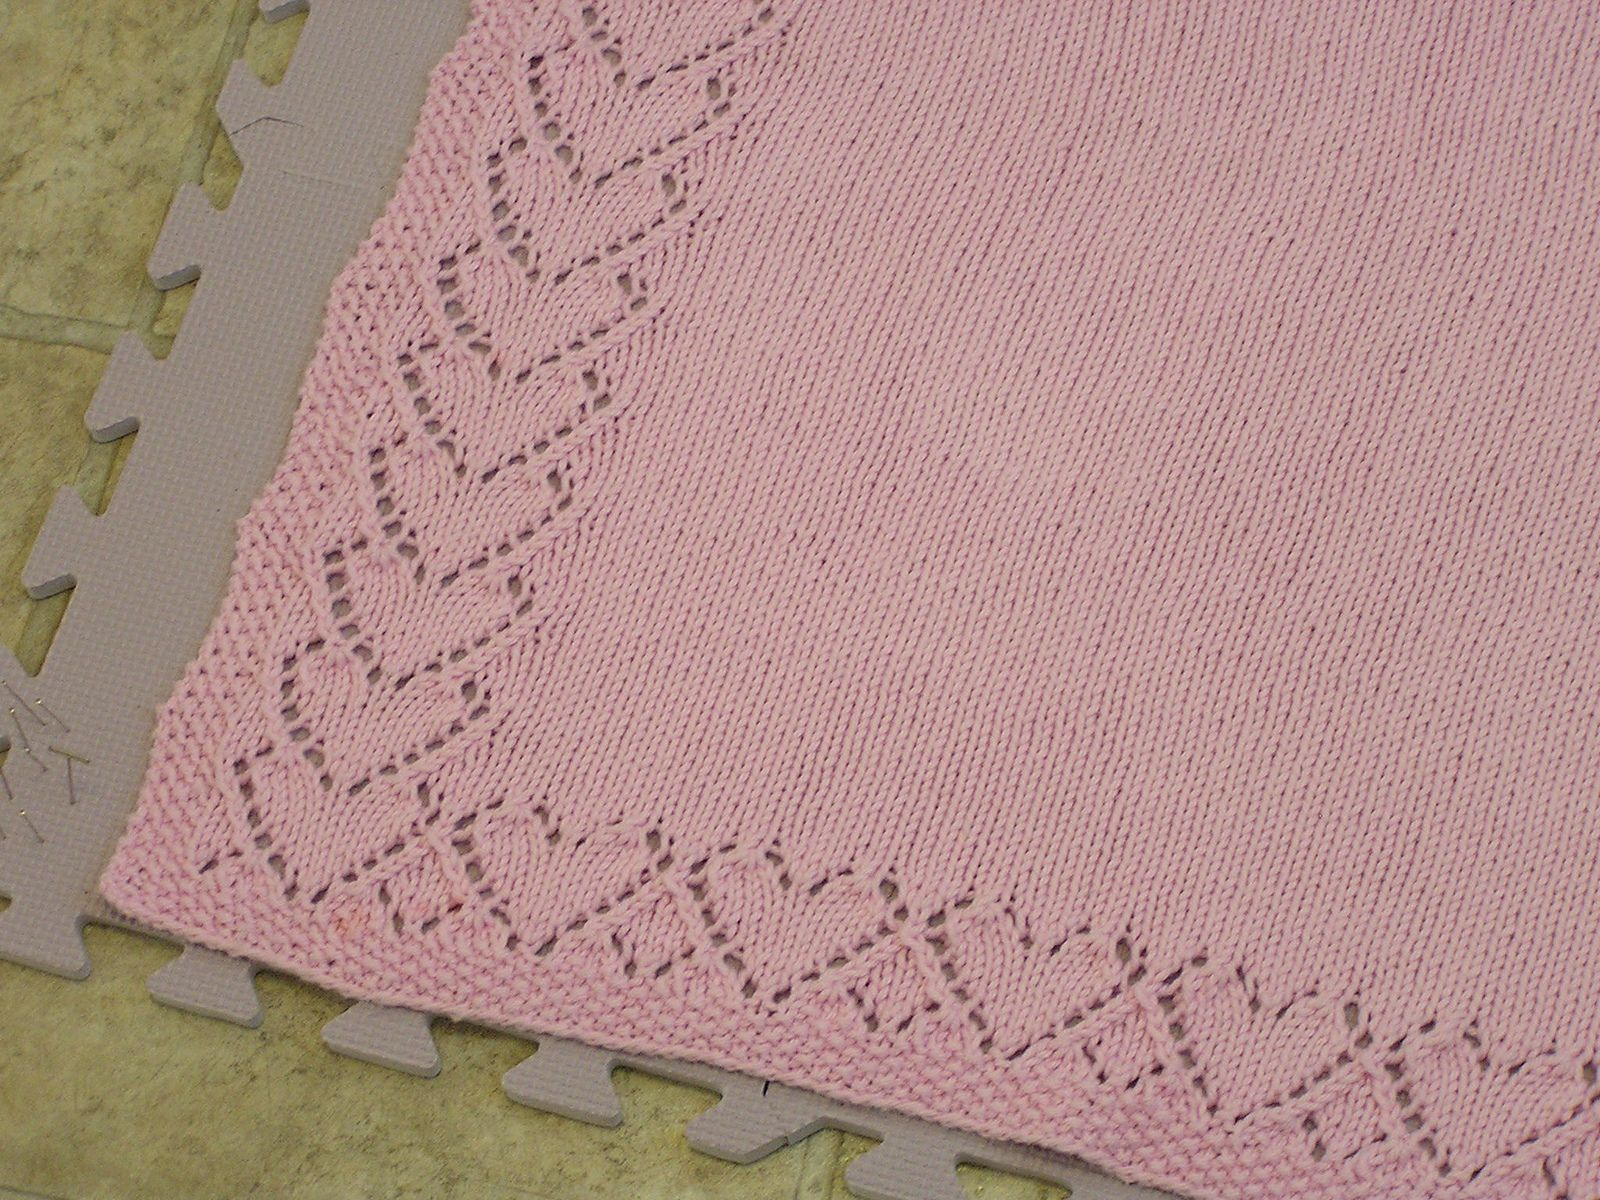 Baby blanket made with a lace heart motif and seed stitch border ravelry baby love blanket pattern by renae jones bankloansurffo Images